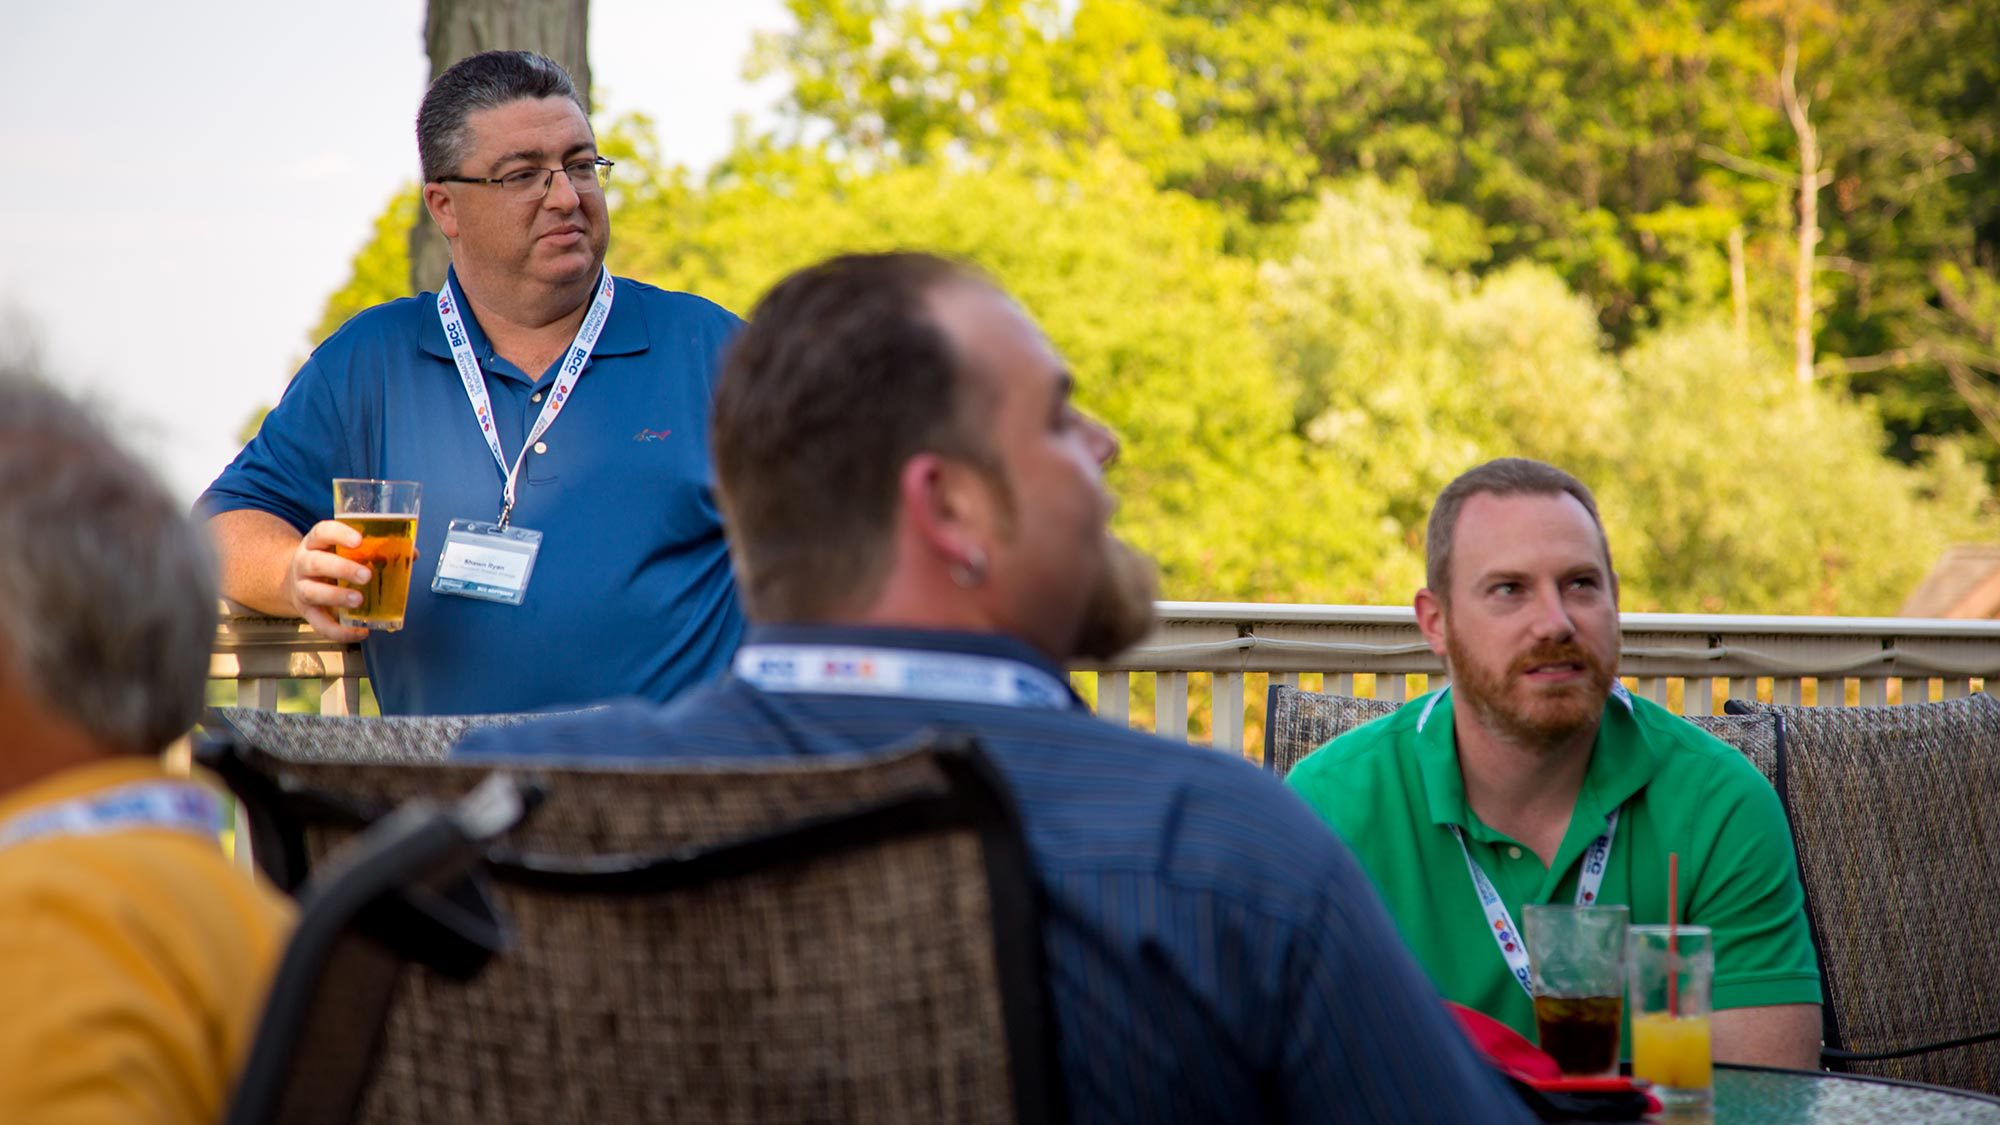 Shawn Ryan, BCC Software Vice President of Product Strategy, listening to customers over drinks.